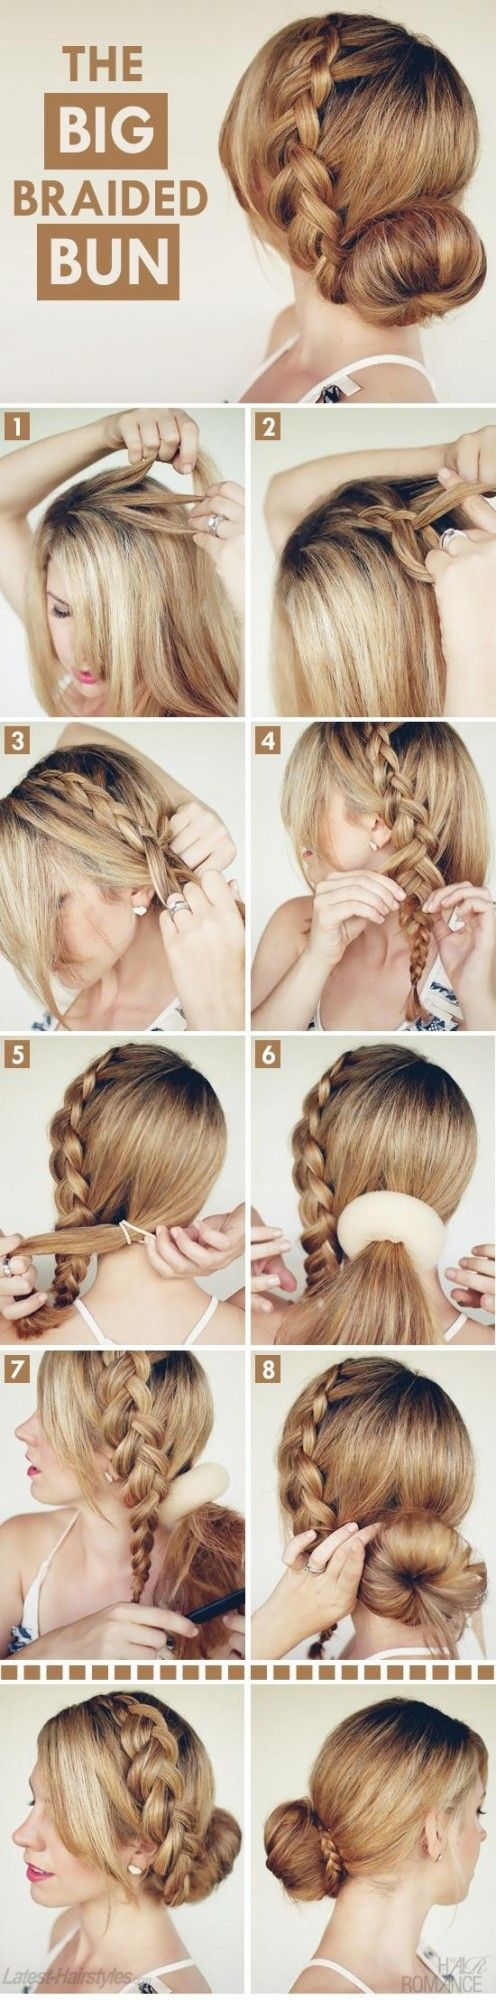 best images about easy hairstyles on pinterest updo and